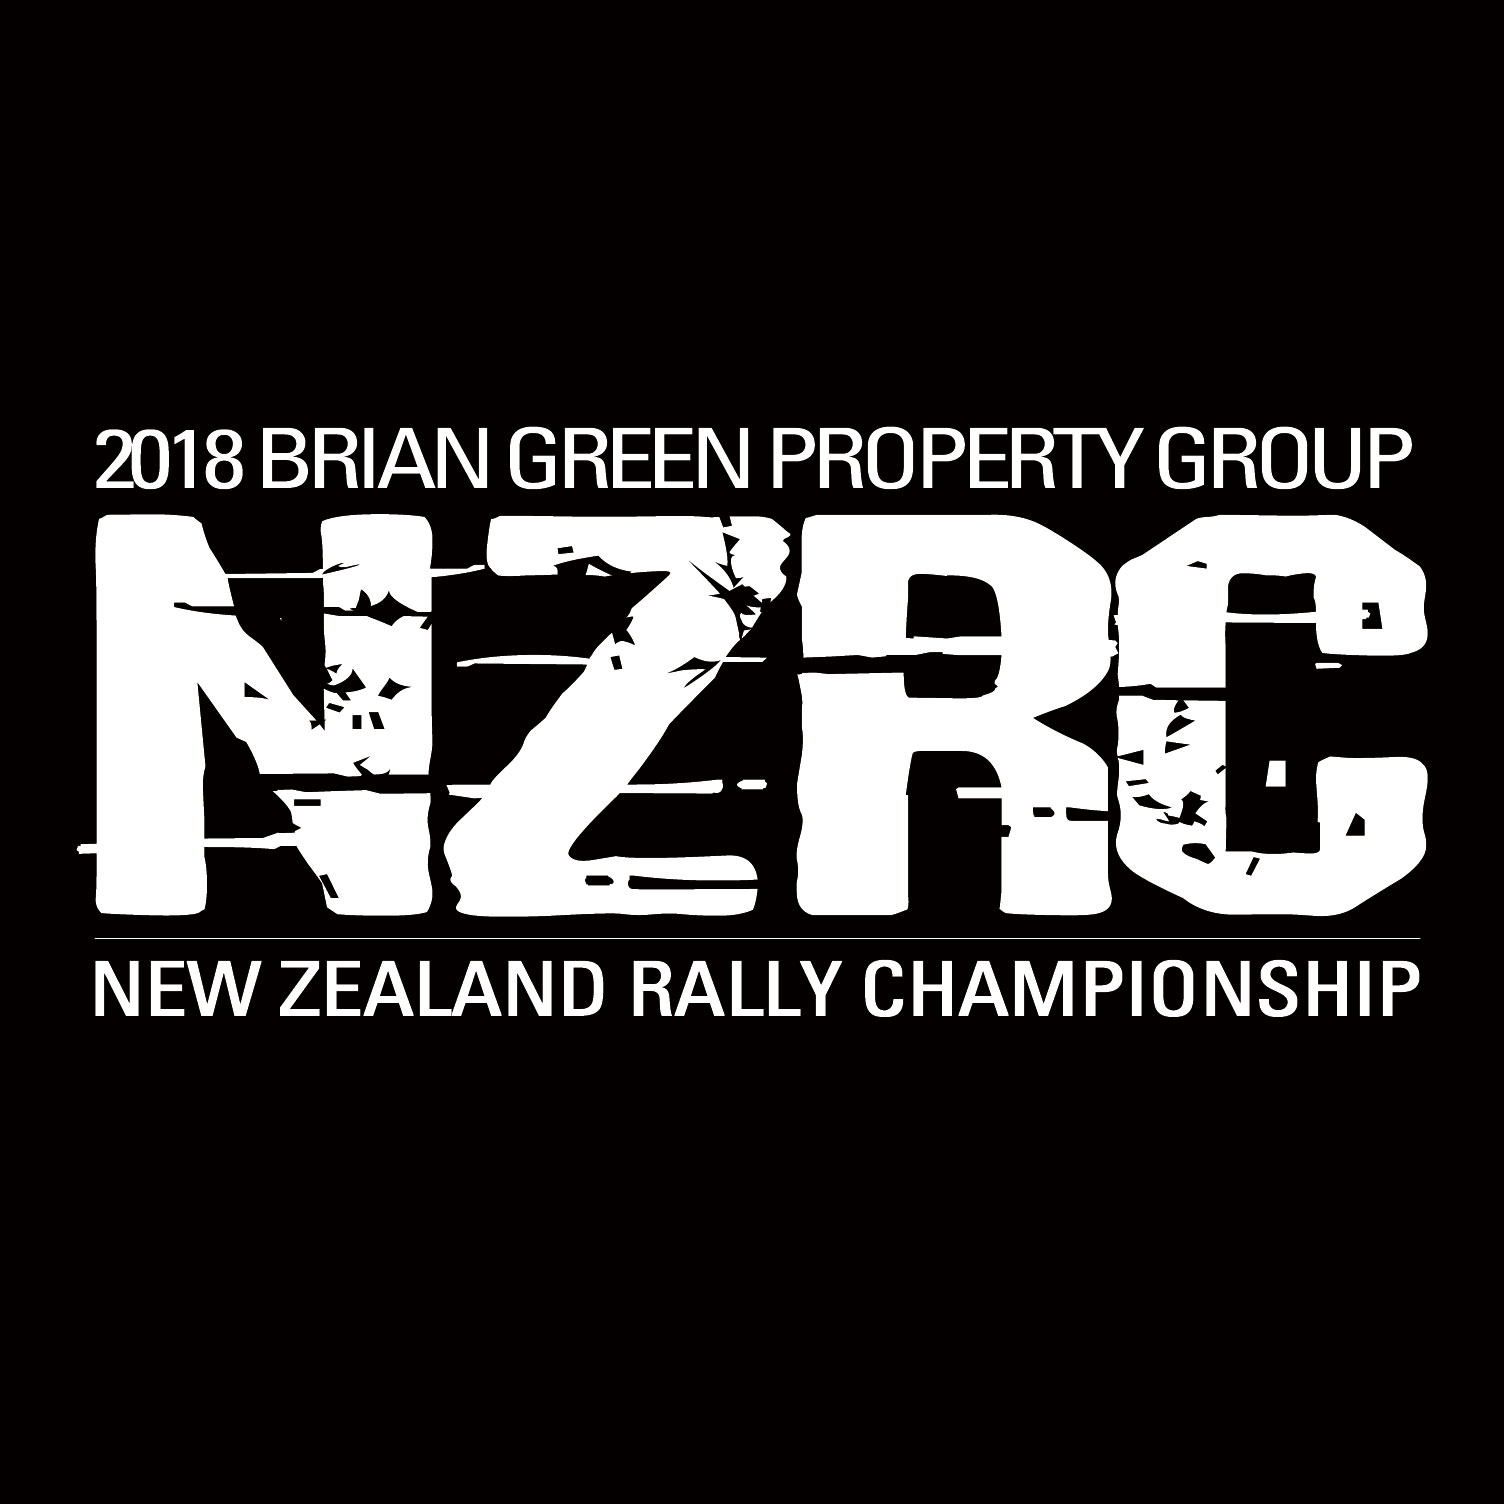 Five minutes with Amy Hudson | :: Brian Green Property Group New Zealand Rally Championship ::